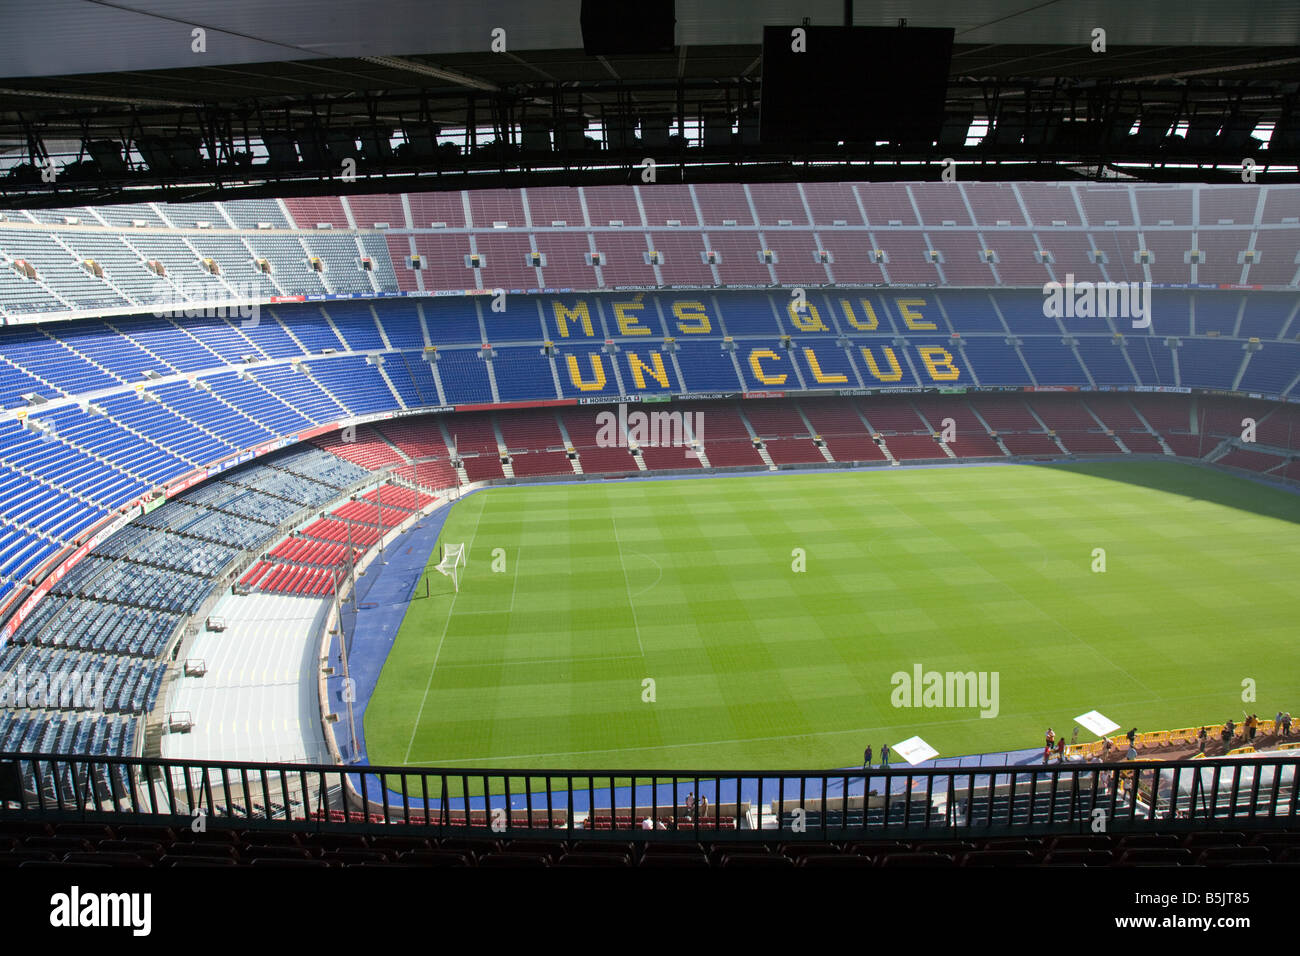 CAMP NOU FC BARCELONA FOOTBALL STADIUM BARCELONAFC FCBARCELONA SPAIN - Stock Image